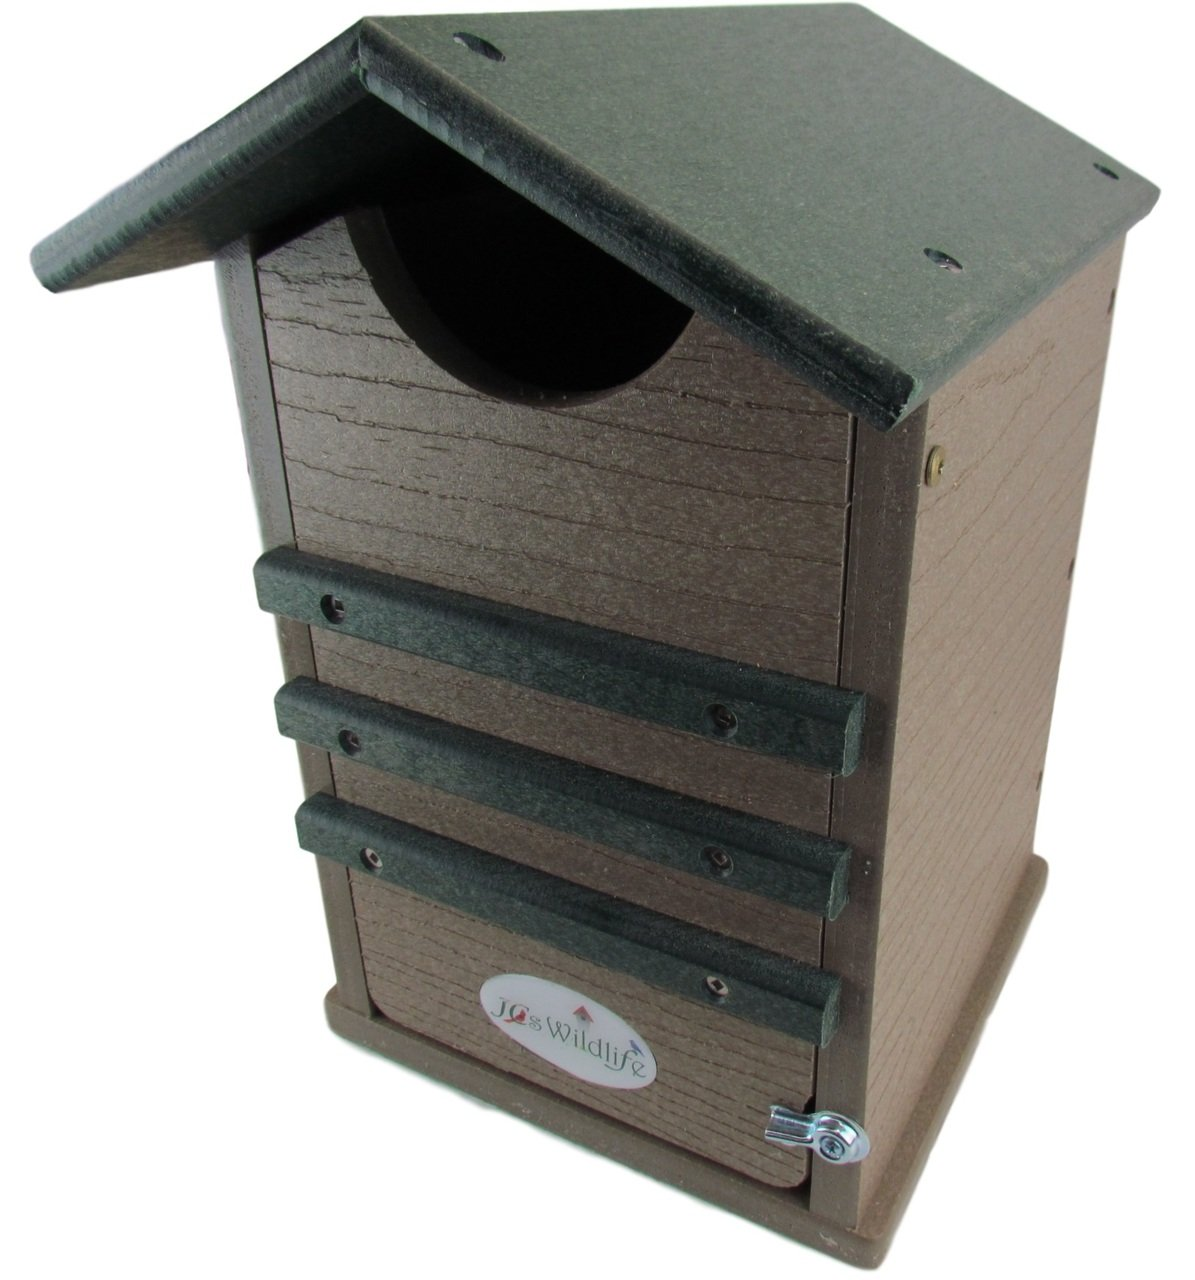 JCs Wildlife Ultimate Poly Screech Owl or Saw-Whet Owl House Nesting Box Made in the USA